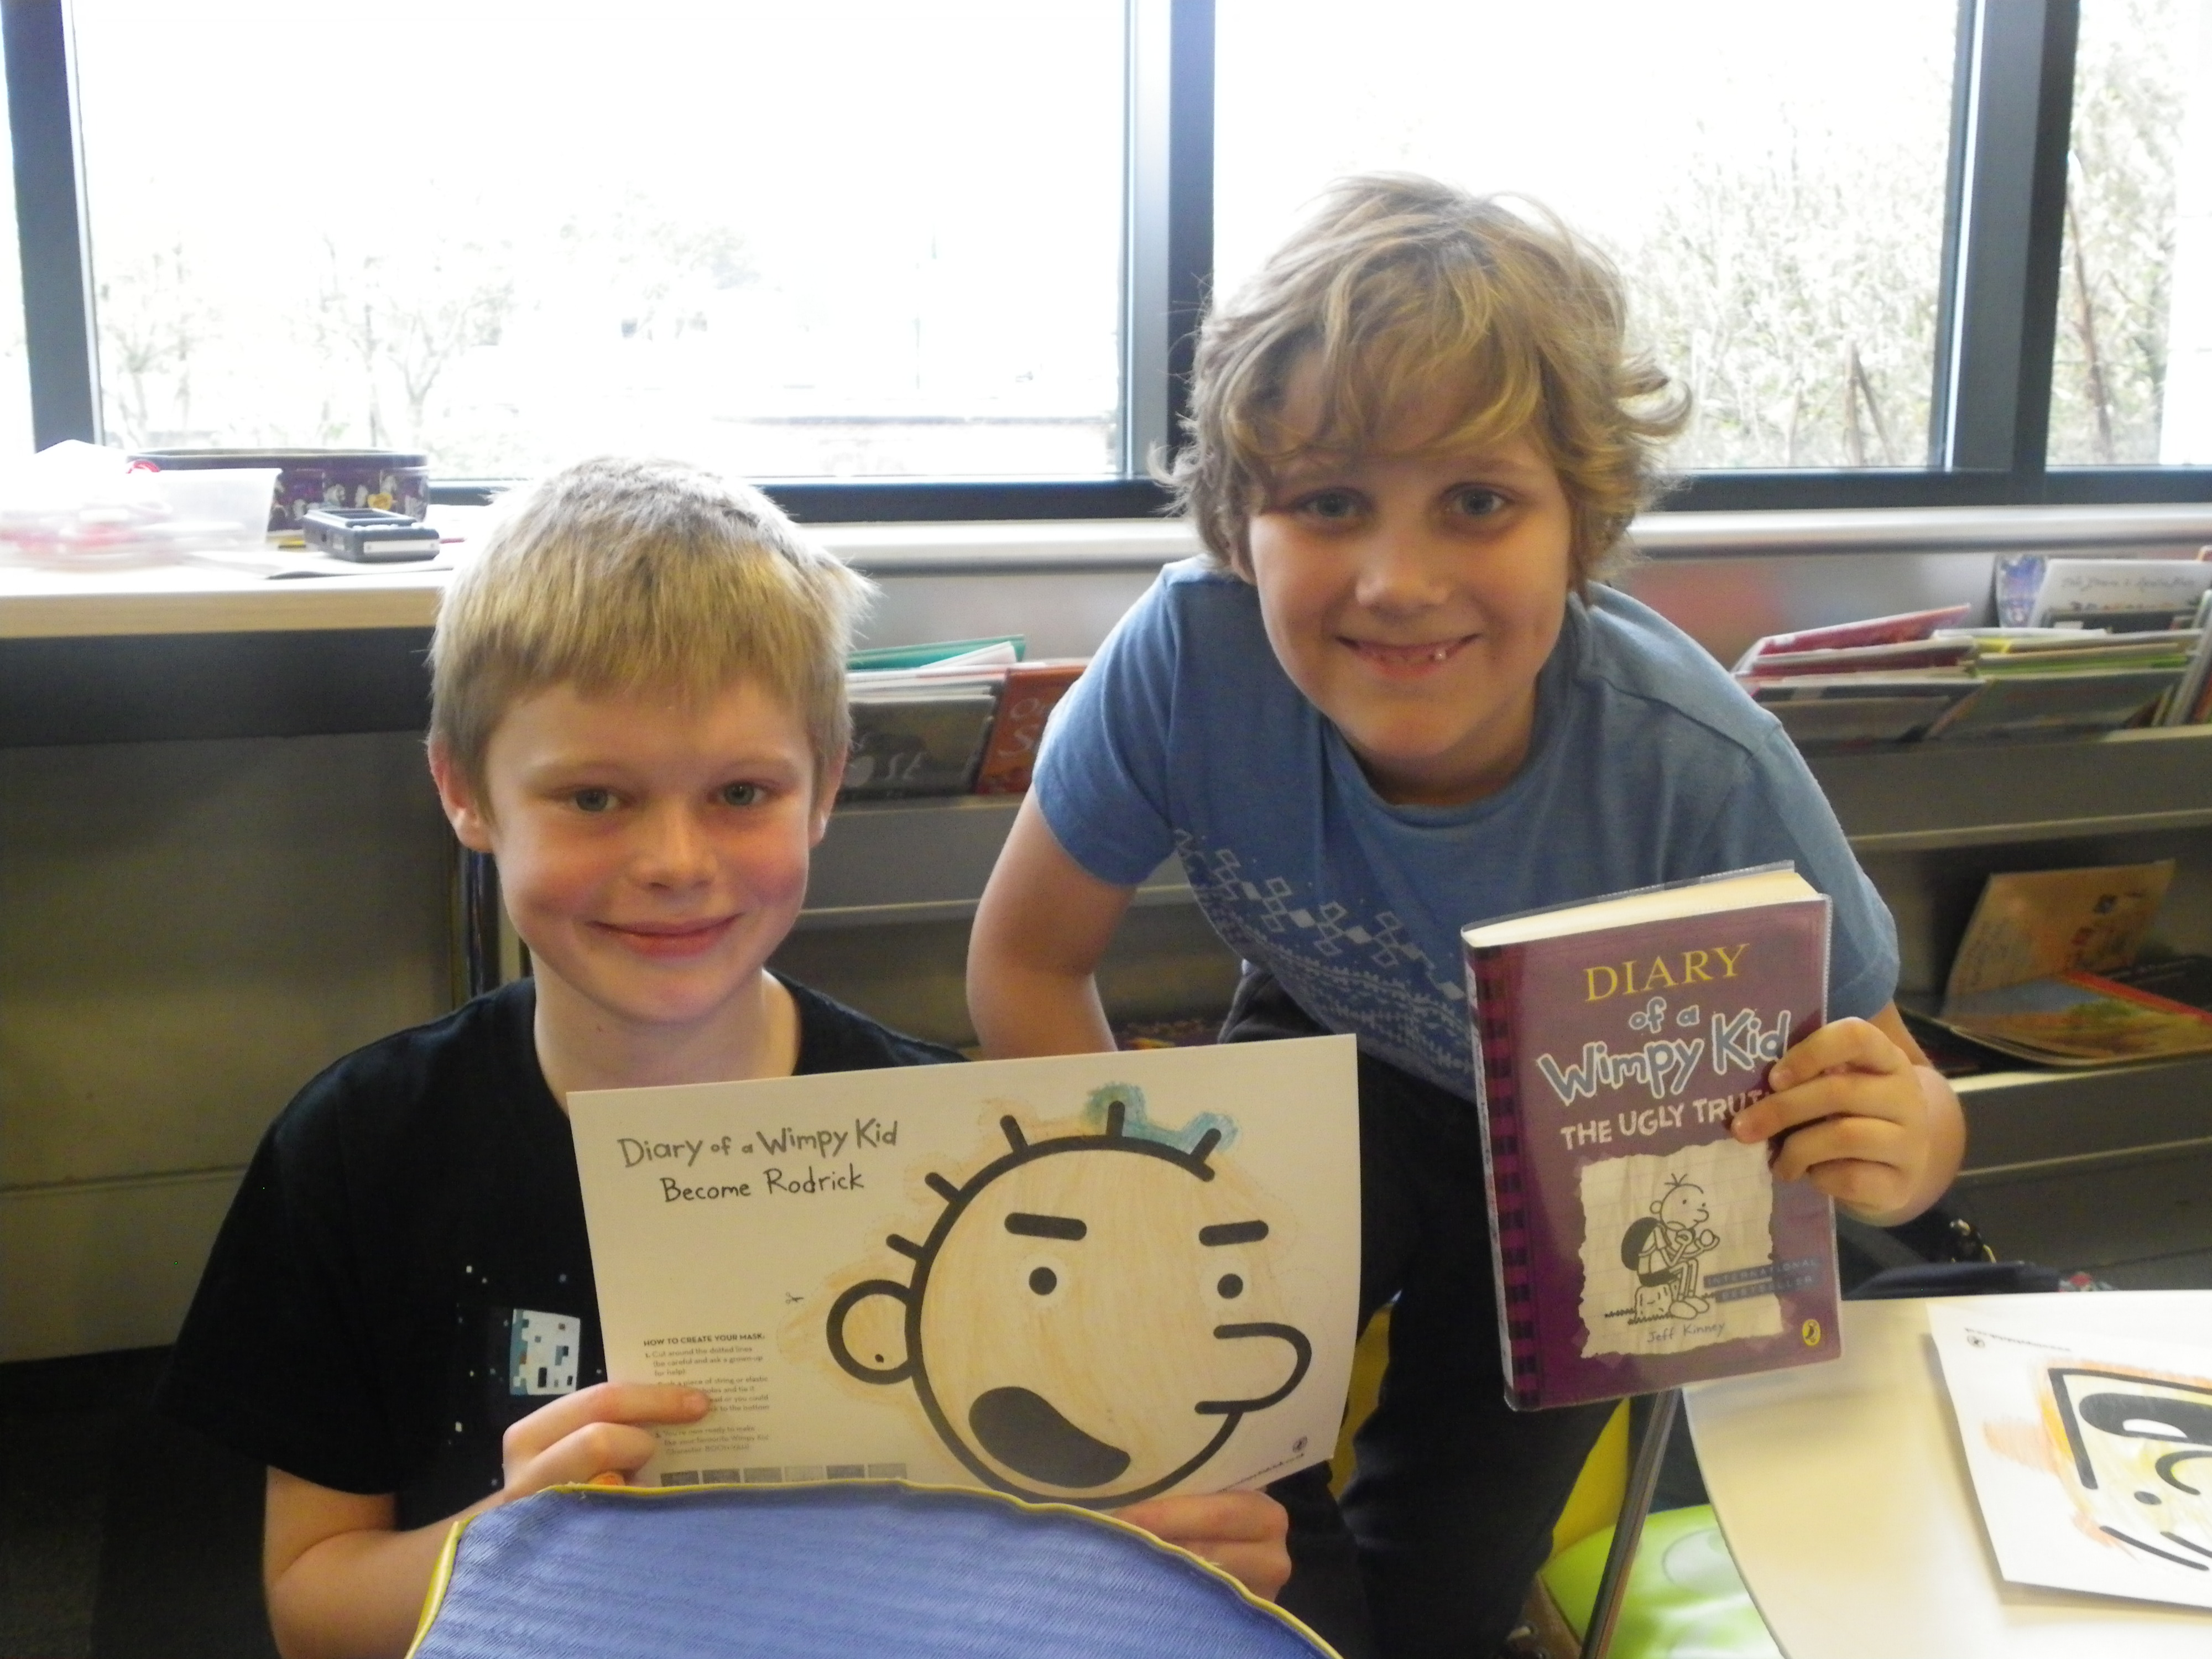 Diary of a wimpy kid news stuck for something to do at half term halton borough council is having a wimpy kid week in its libraries why not dress up your child as their favourite solutioingenieria Gallery